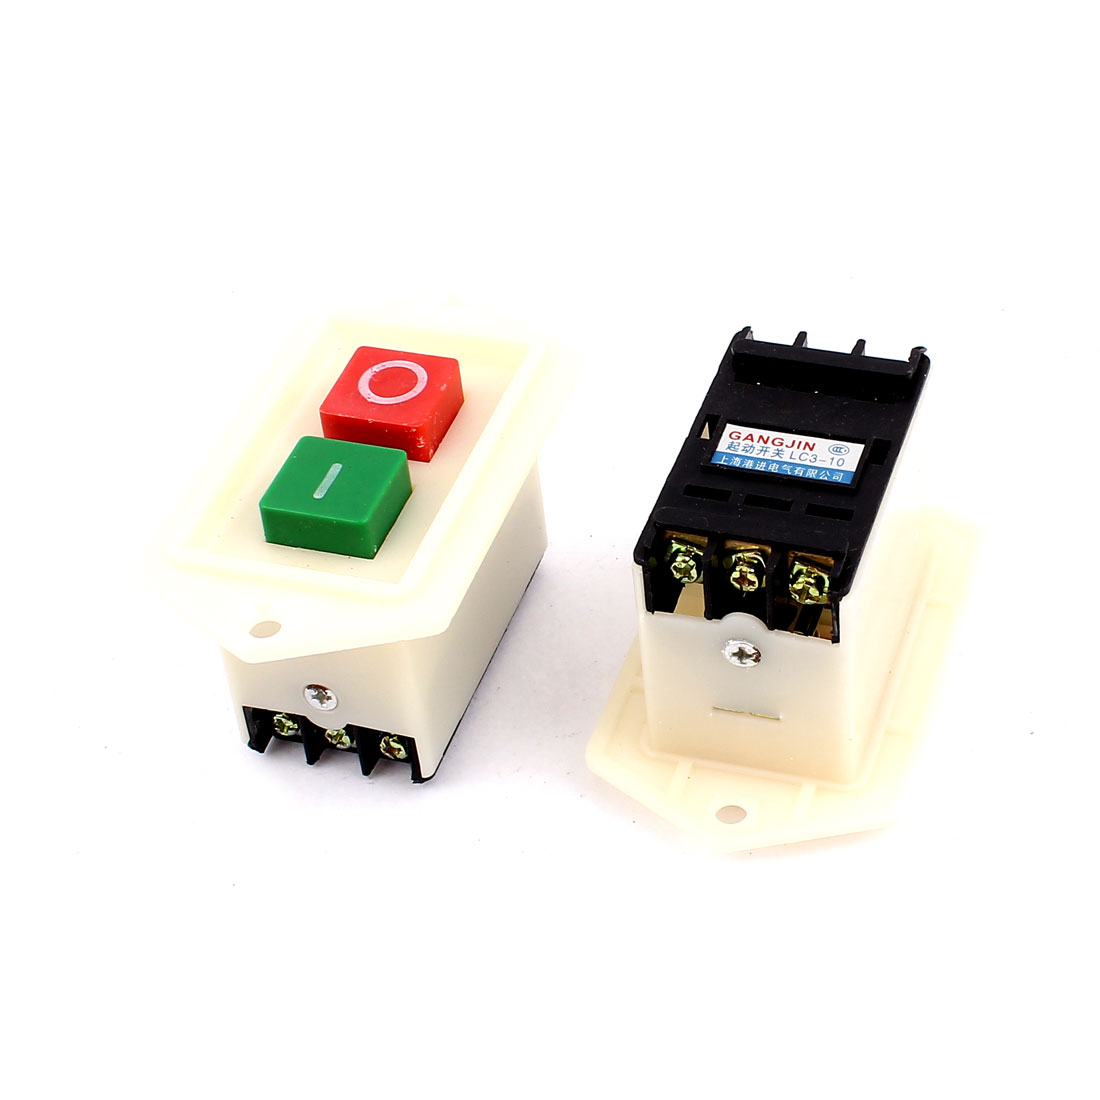 AC 220/380V 10A O/I Start Stop Self-Locking Push Button Switch 2pcs